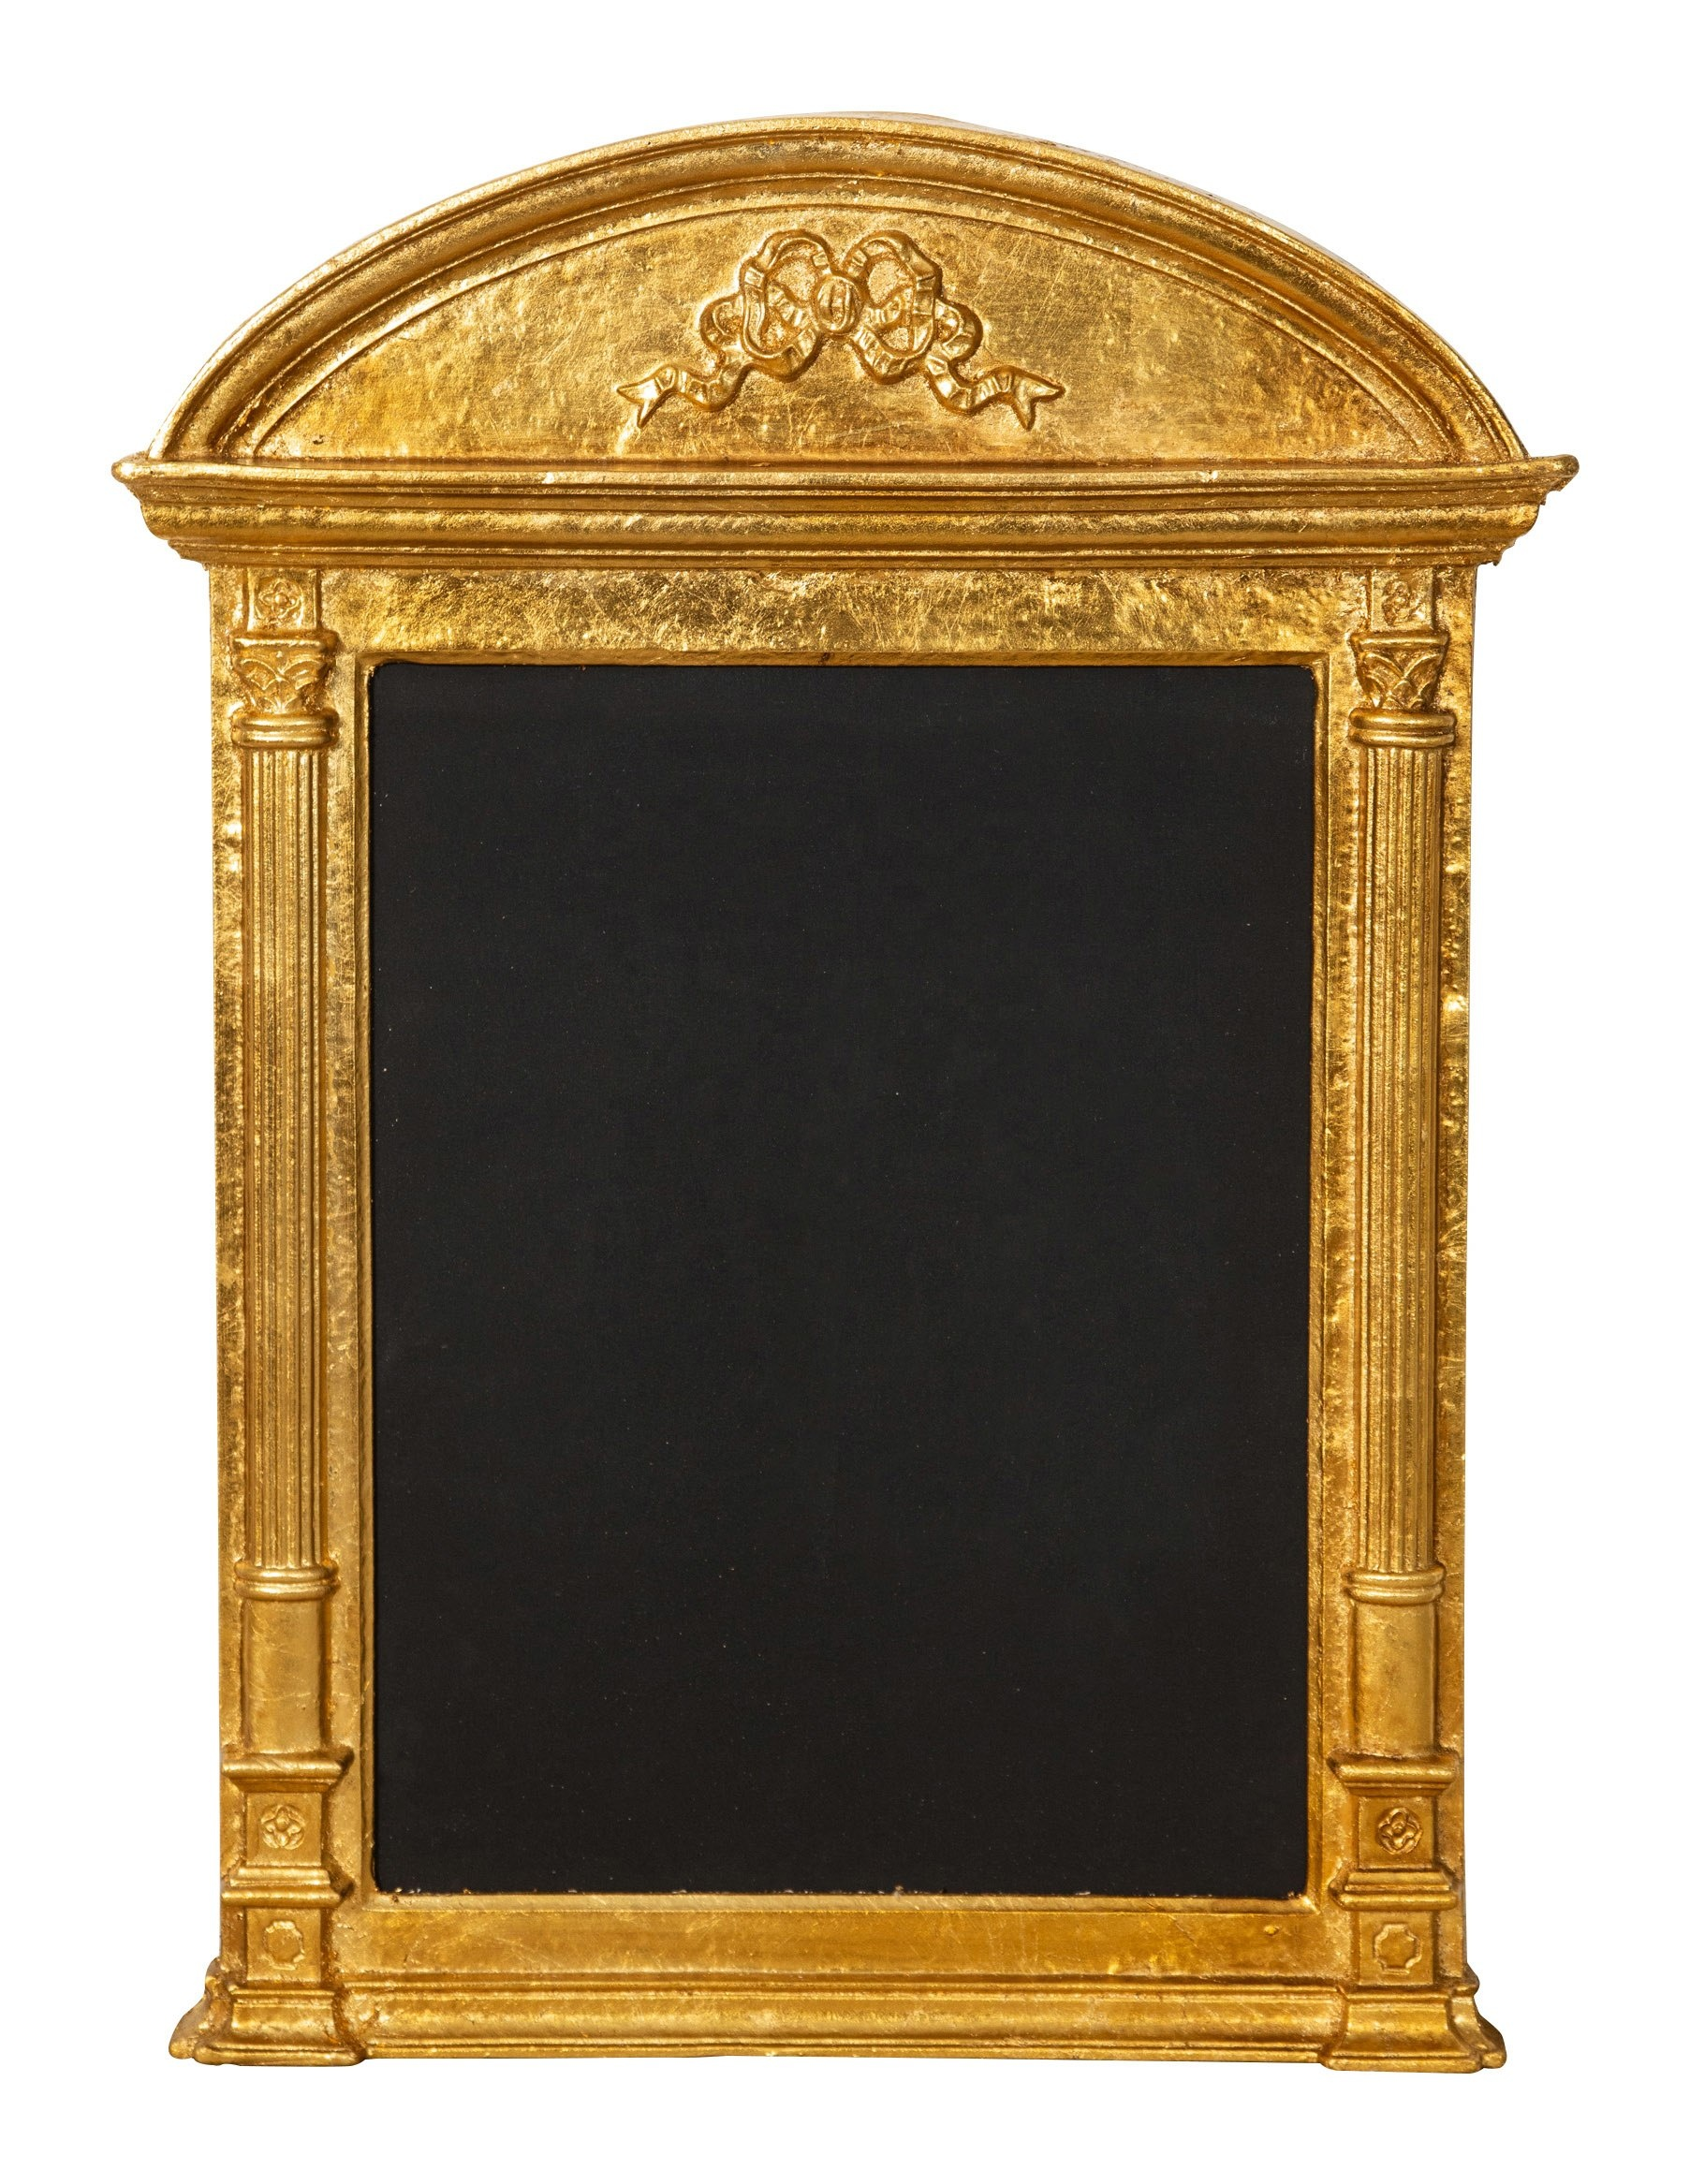 Biscottini International Art Trading wall board with wooden frame and antiqued gold leaf finishing made in italy  - buy gold finished wall mirror,wooden hanging mirror,lovely and romantic